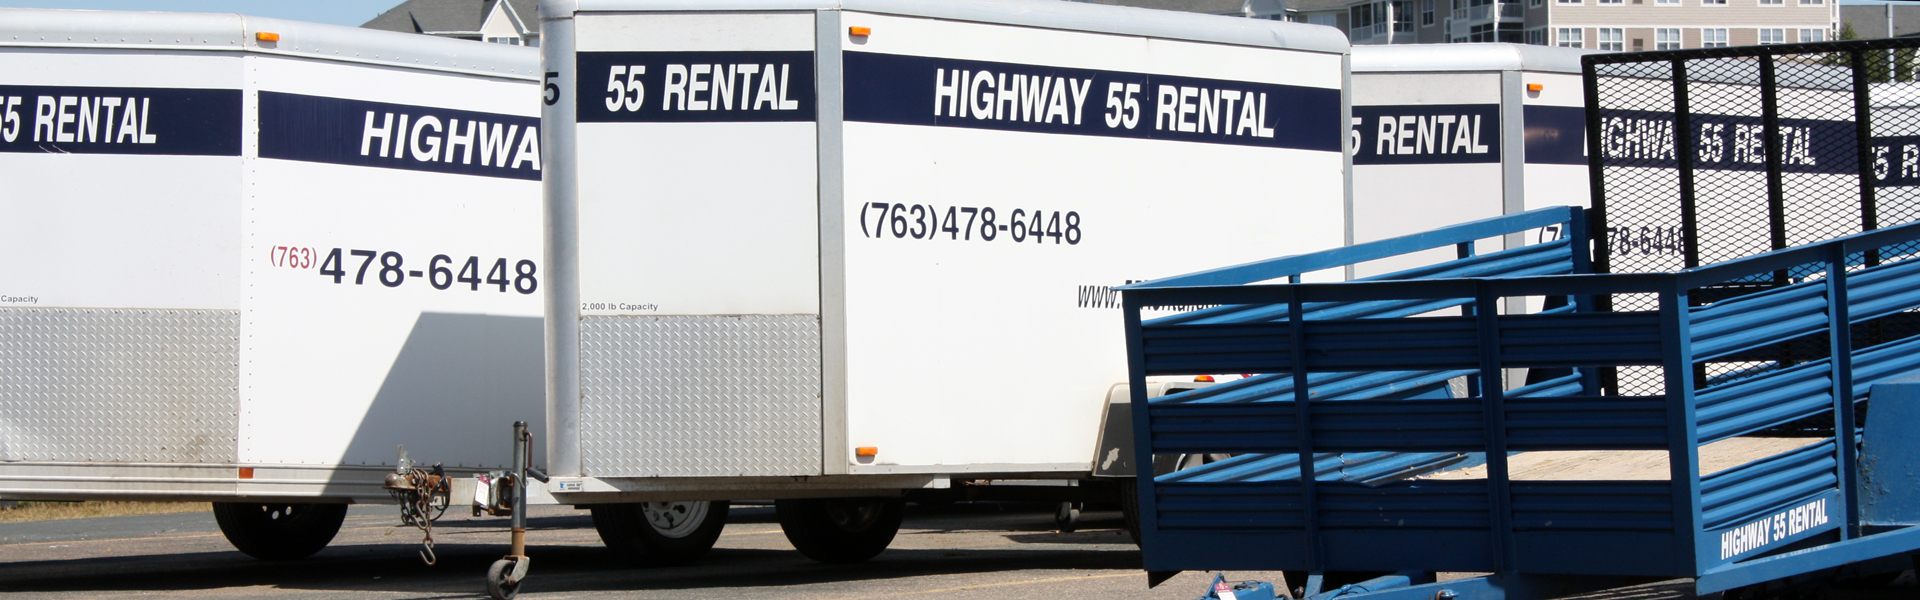 Truck rentals in Plymouth MN